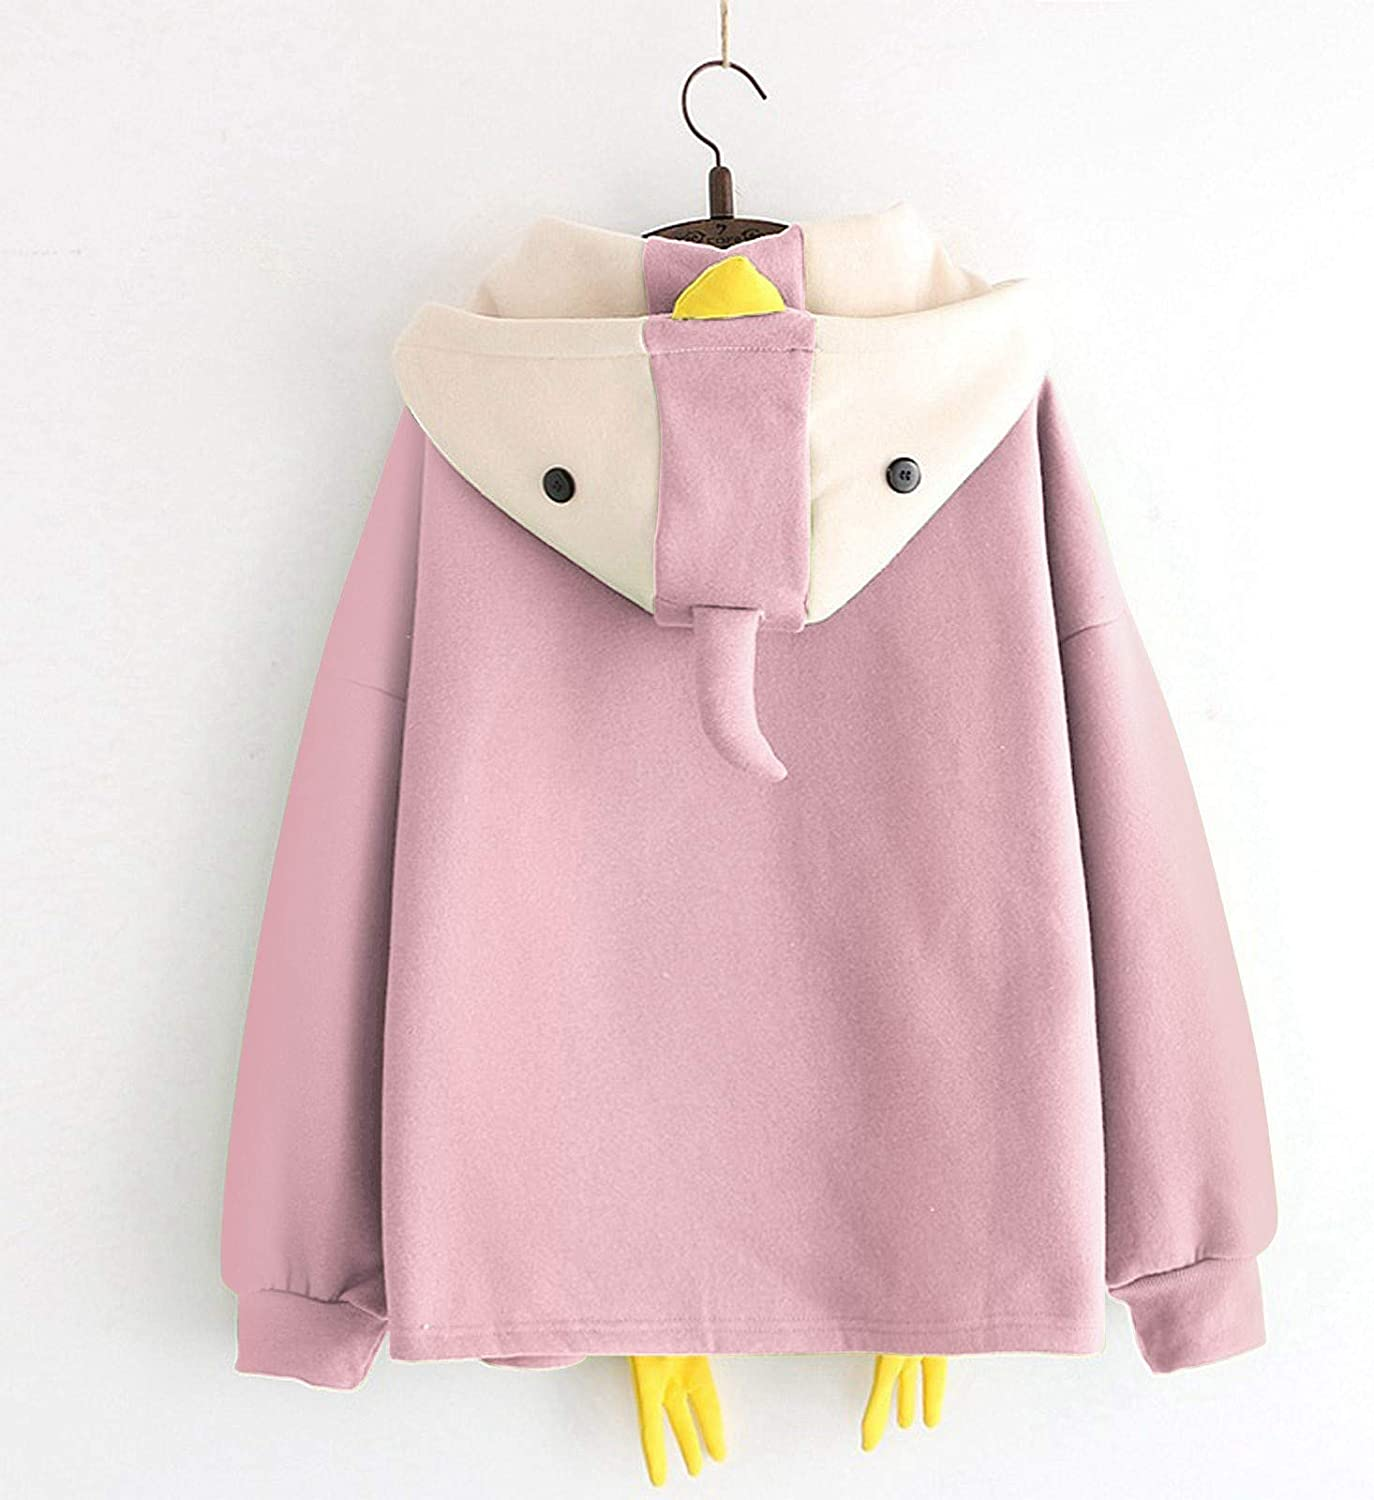 Oversized Hoodie for Women,Women's Casual Chicks Appearance Long Sleeve Sweatshirt Drawstring Pullover Tops